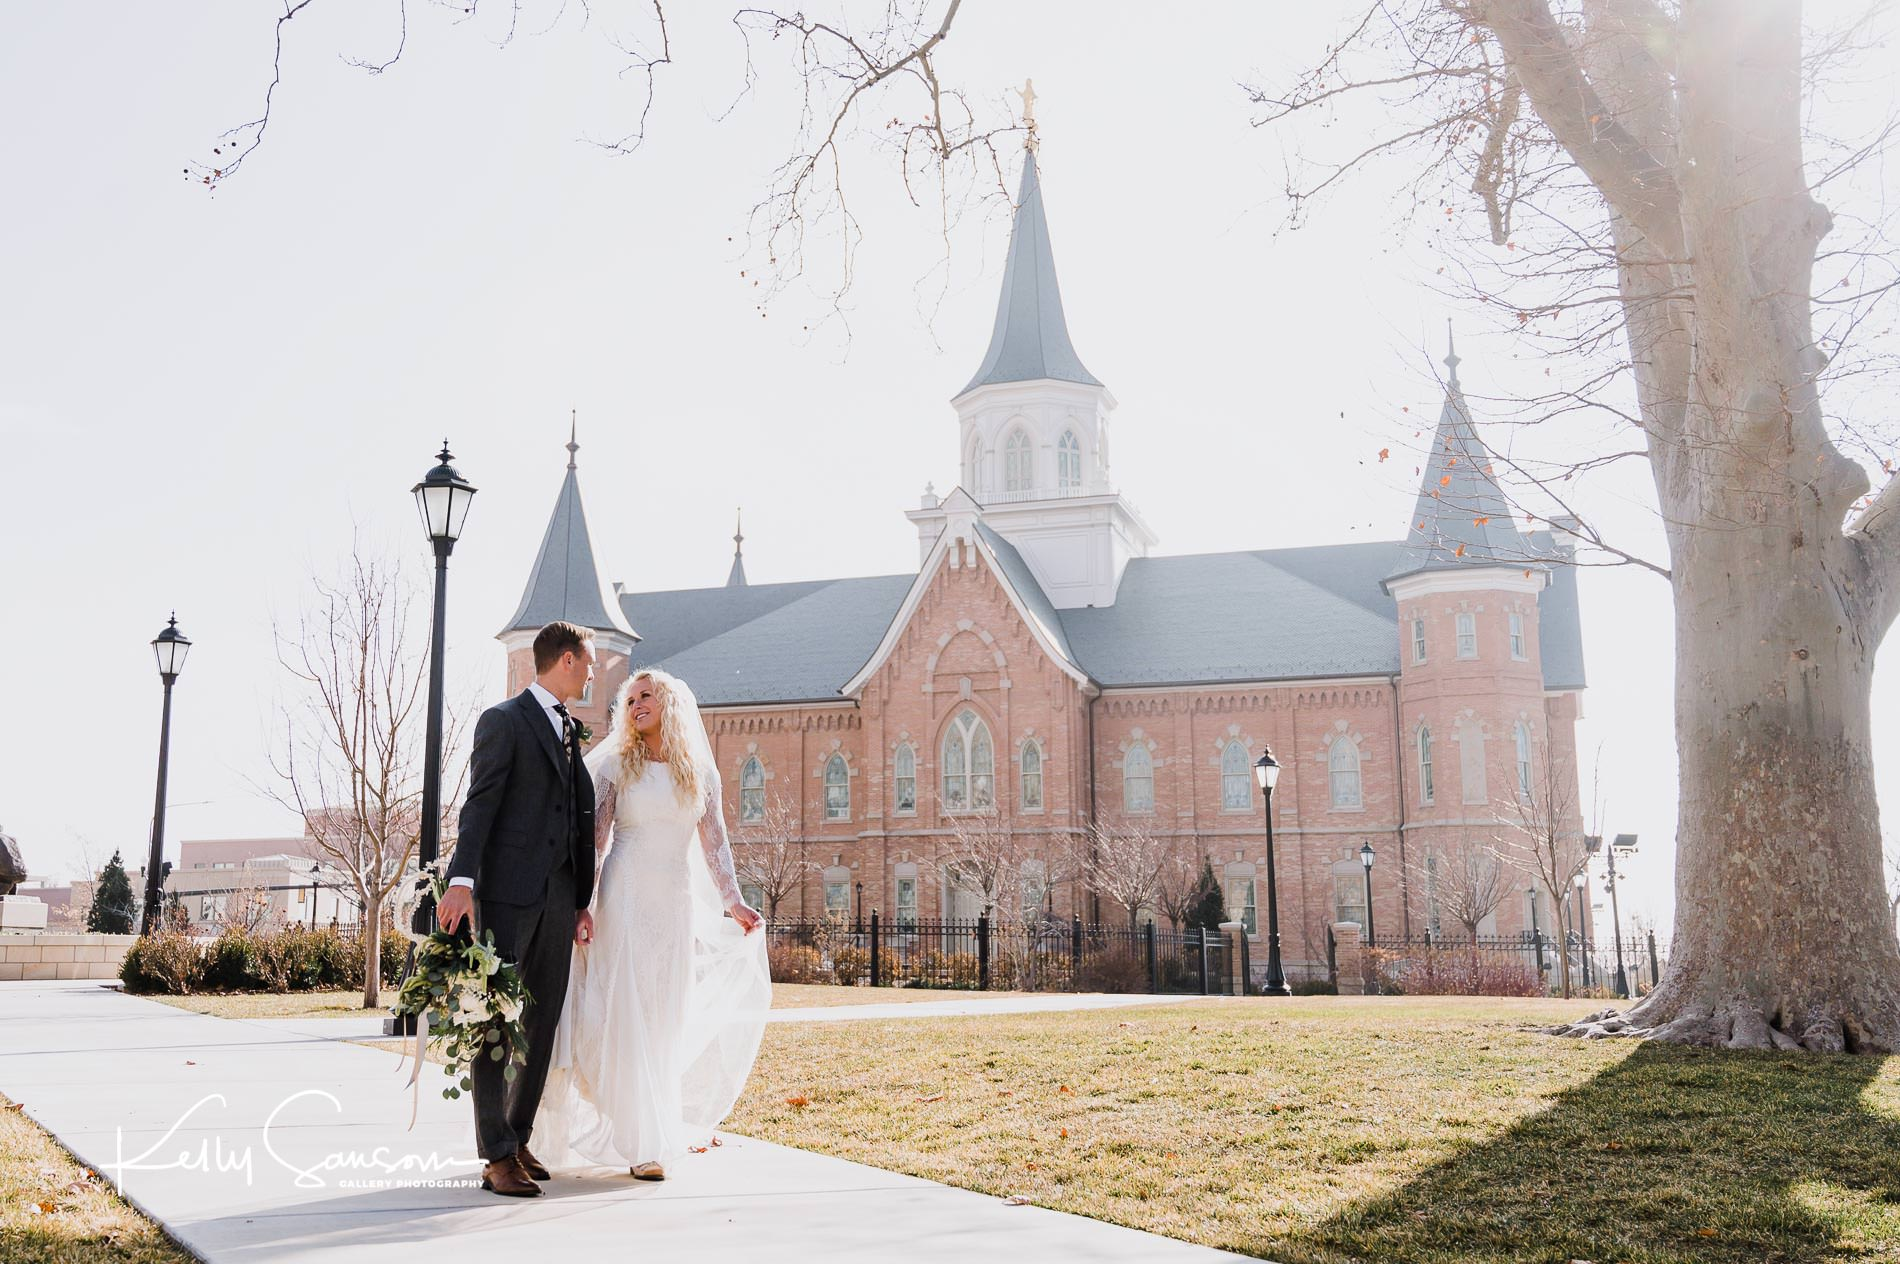 Lauren and Spencer Wedding Photography at the Provo City Center Temple and Soldier Hollow